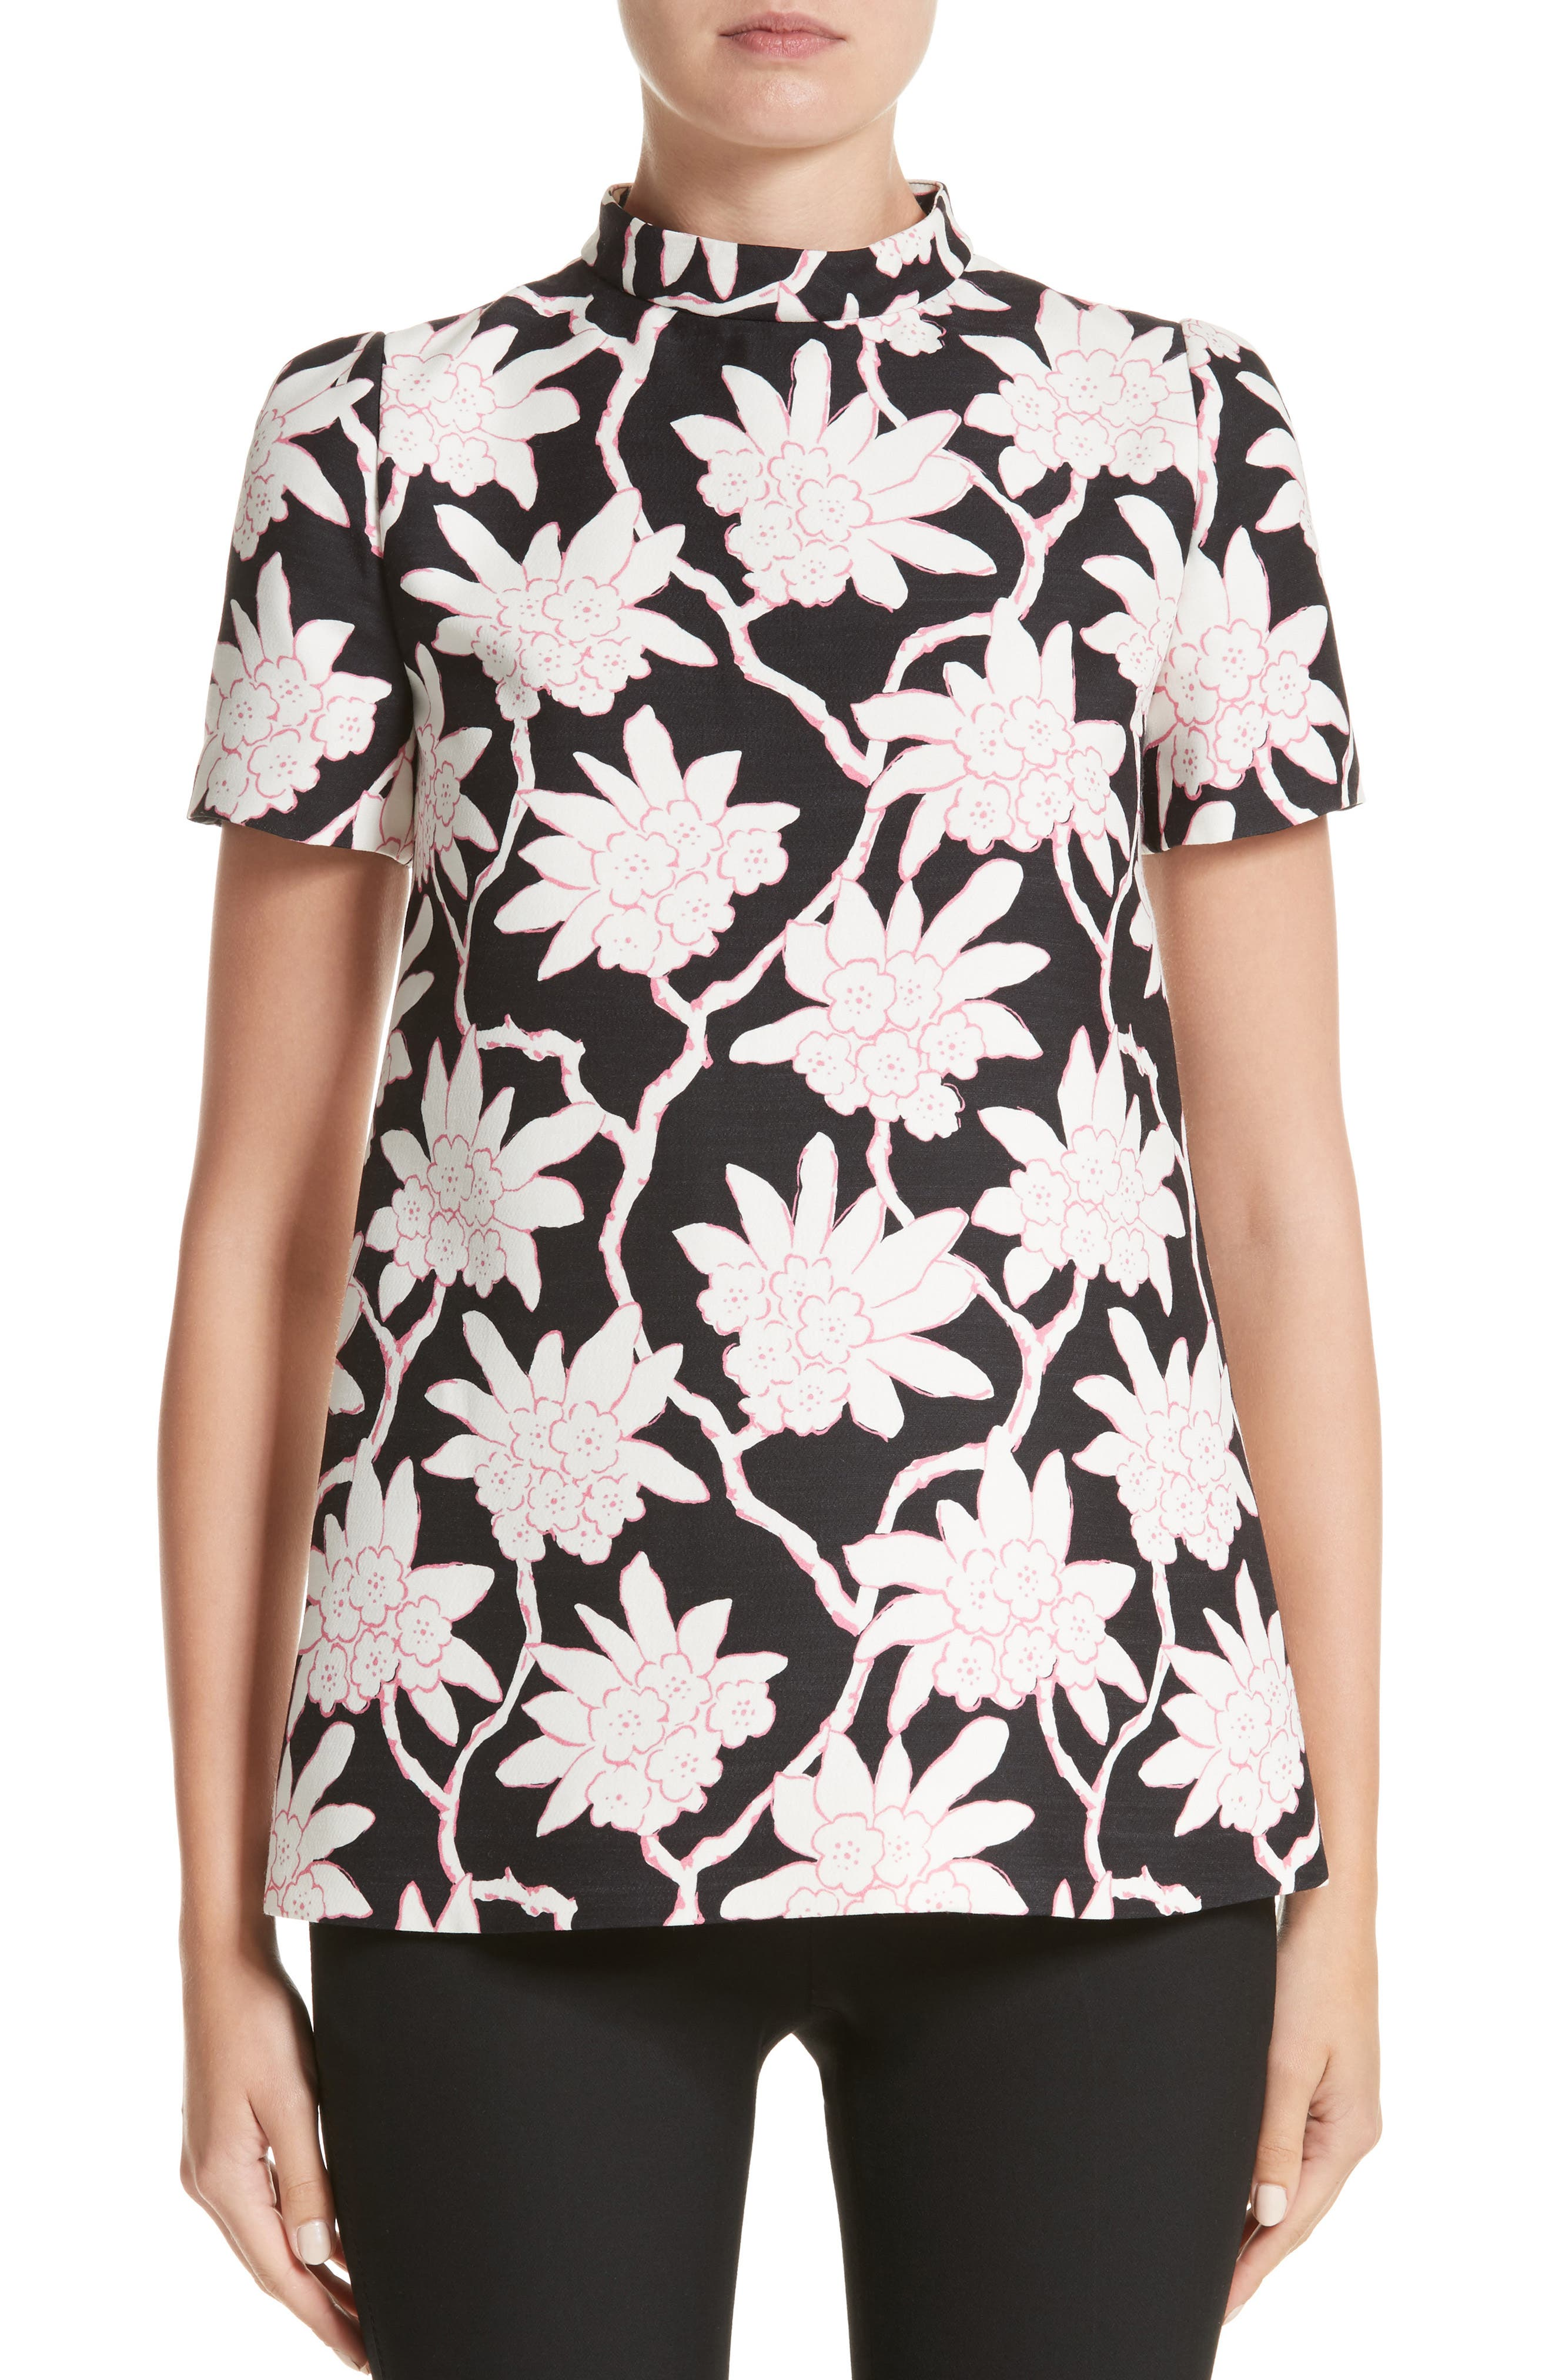 Rhododendron Print Wool & Silk Top,                         Main,                         color, 001